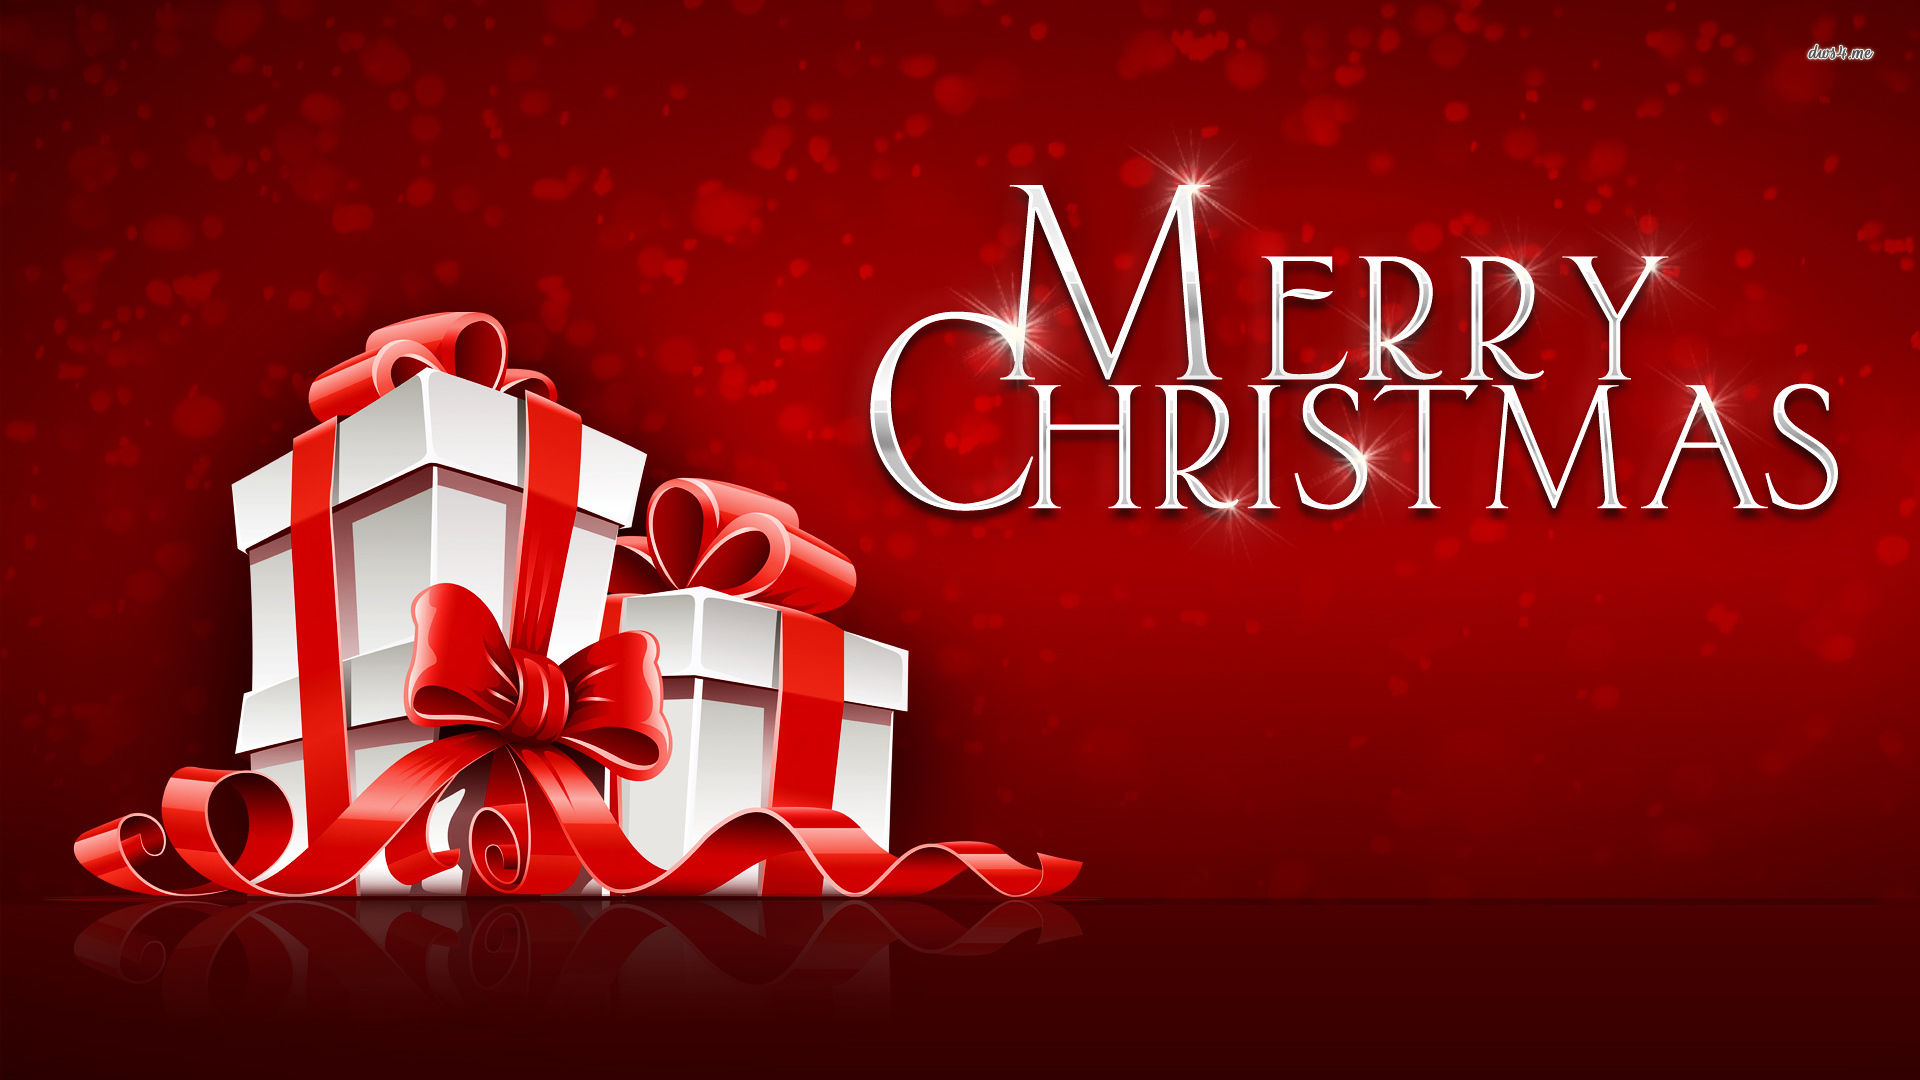 Merry Christmas To All Pictures, Photos, and Images for Facebook ...